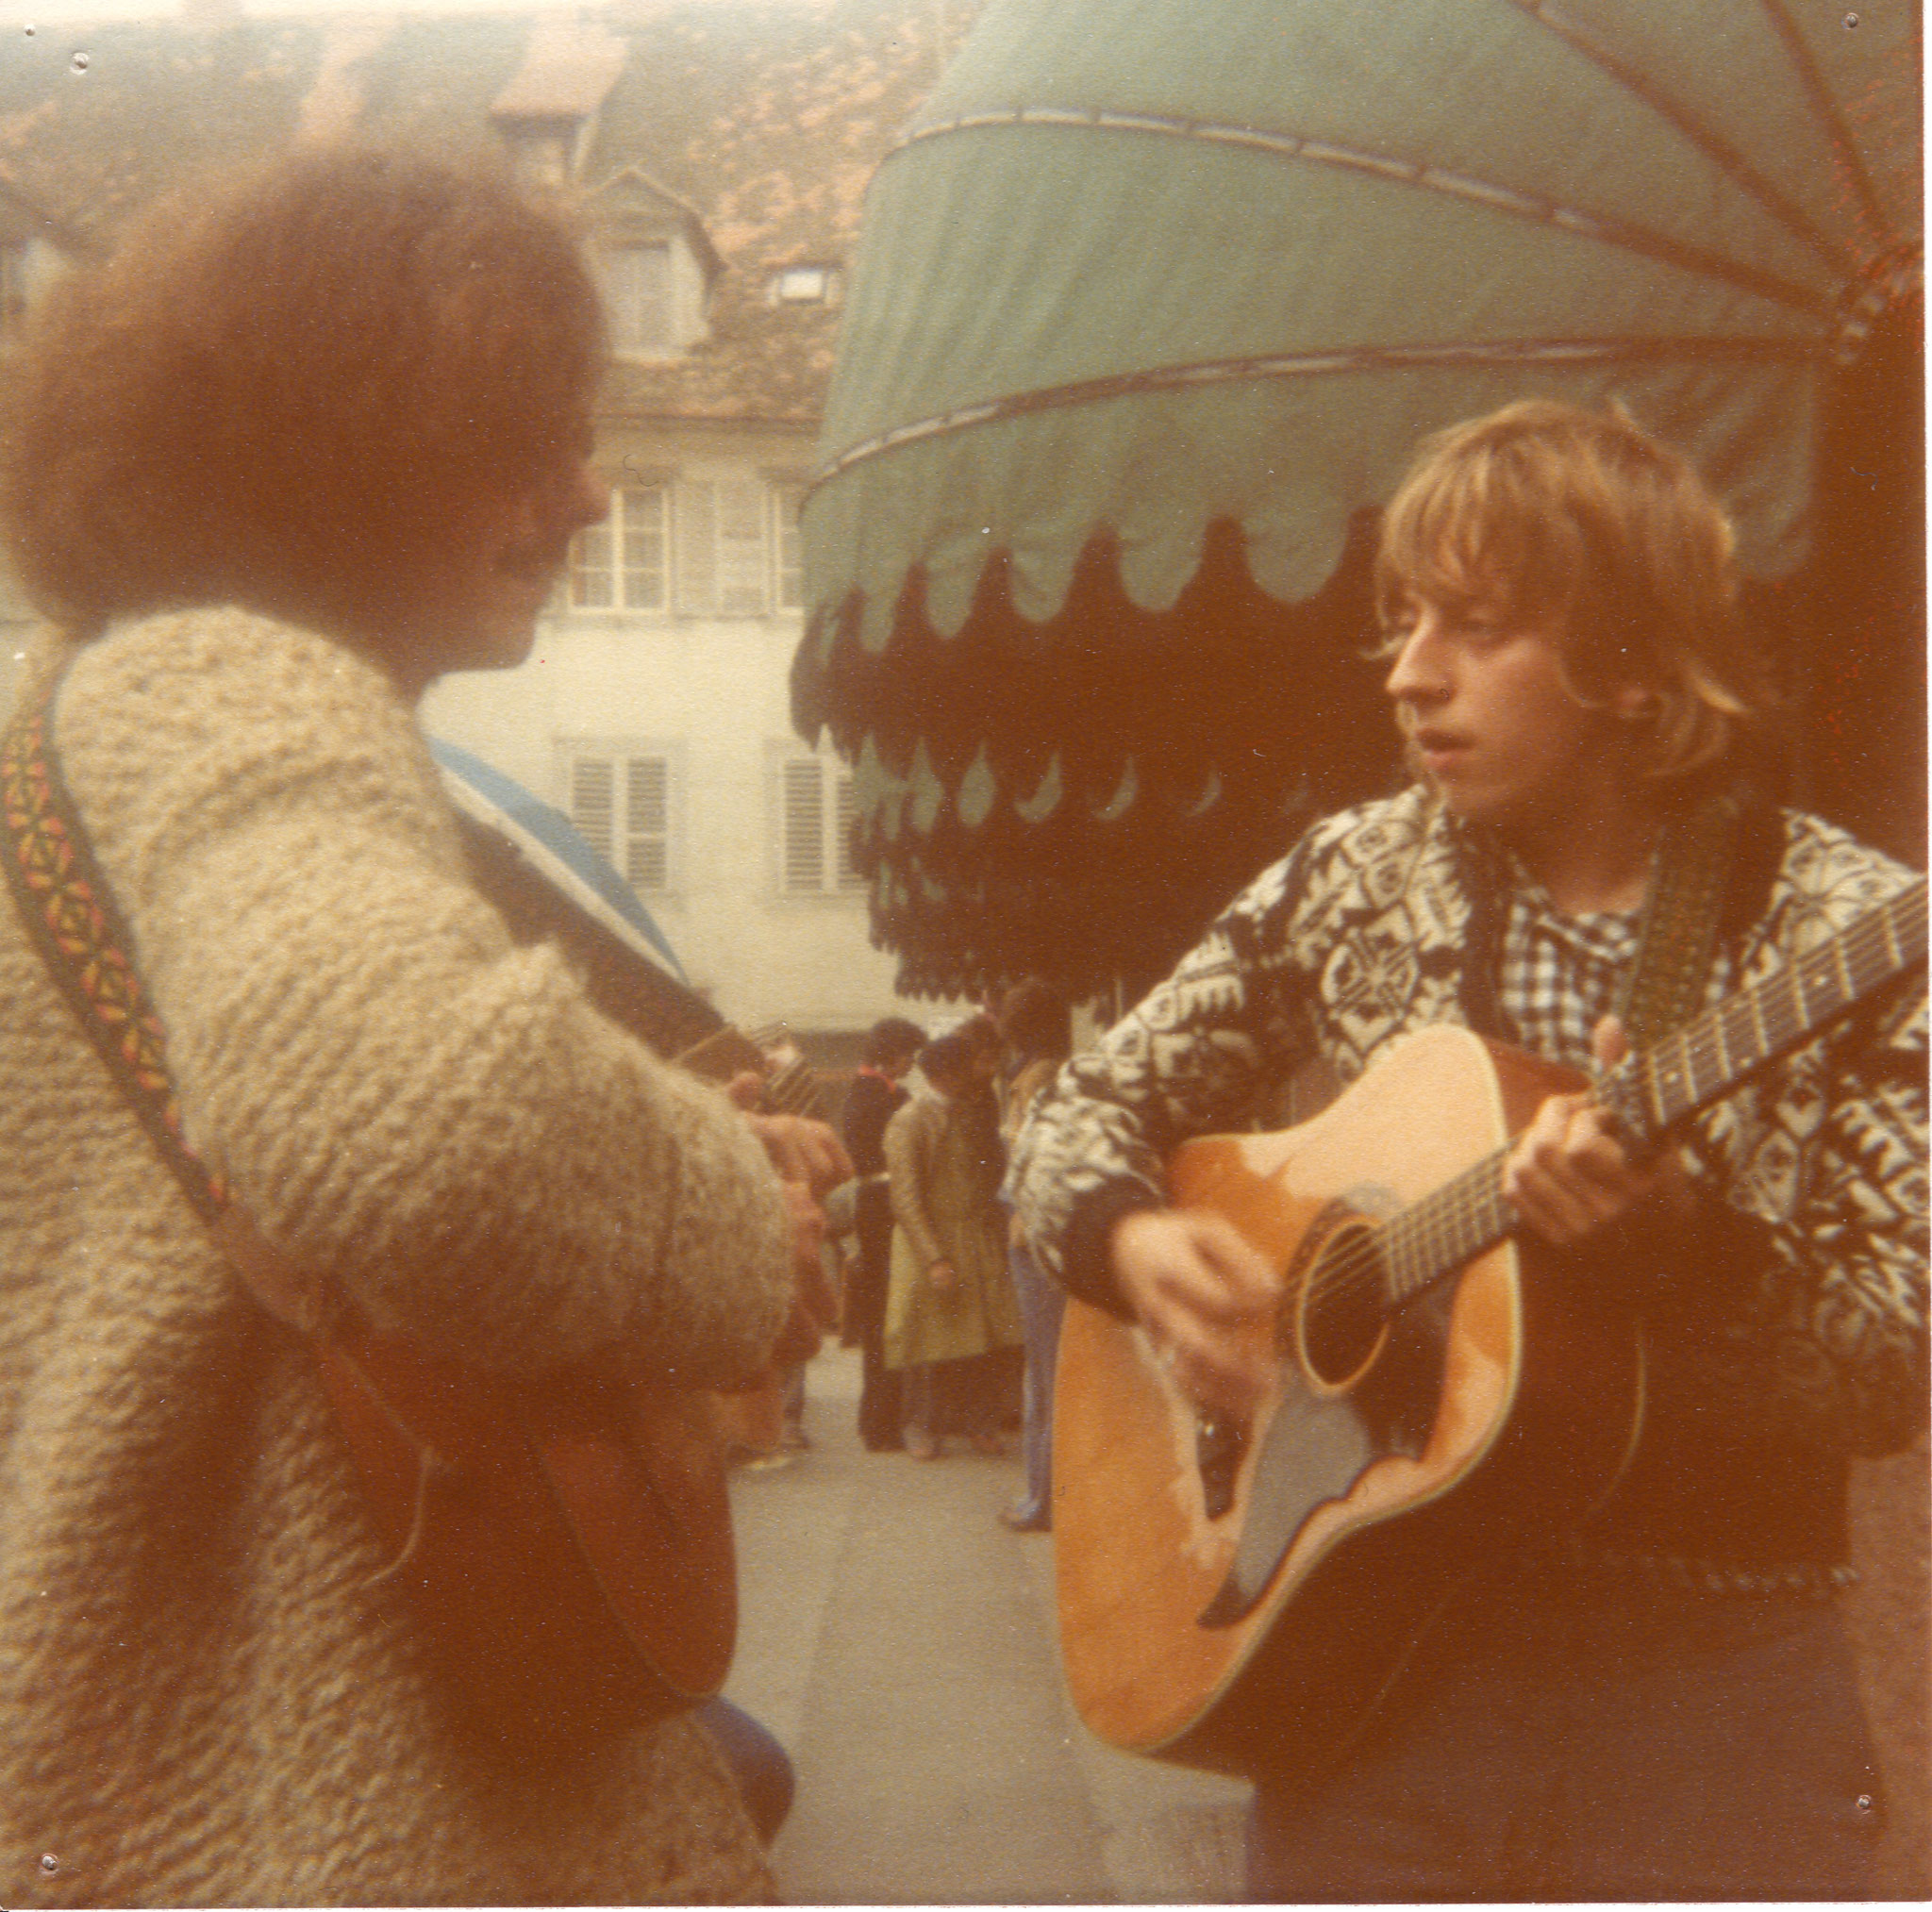 HOMBURGER und ANDREAS DANNENMAYER, Konstanz 1976 (Foto: Homburger)